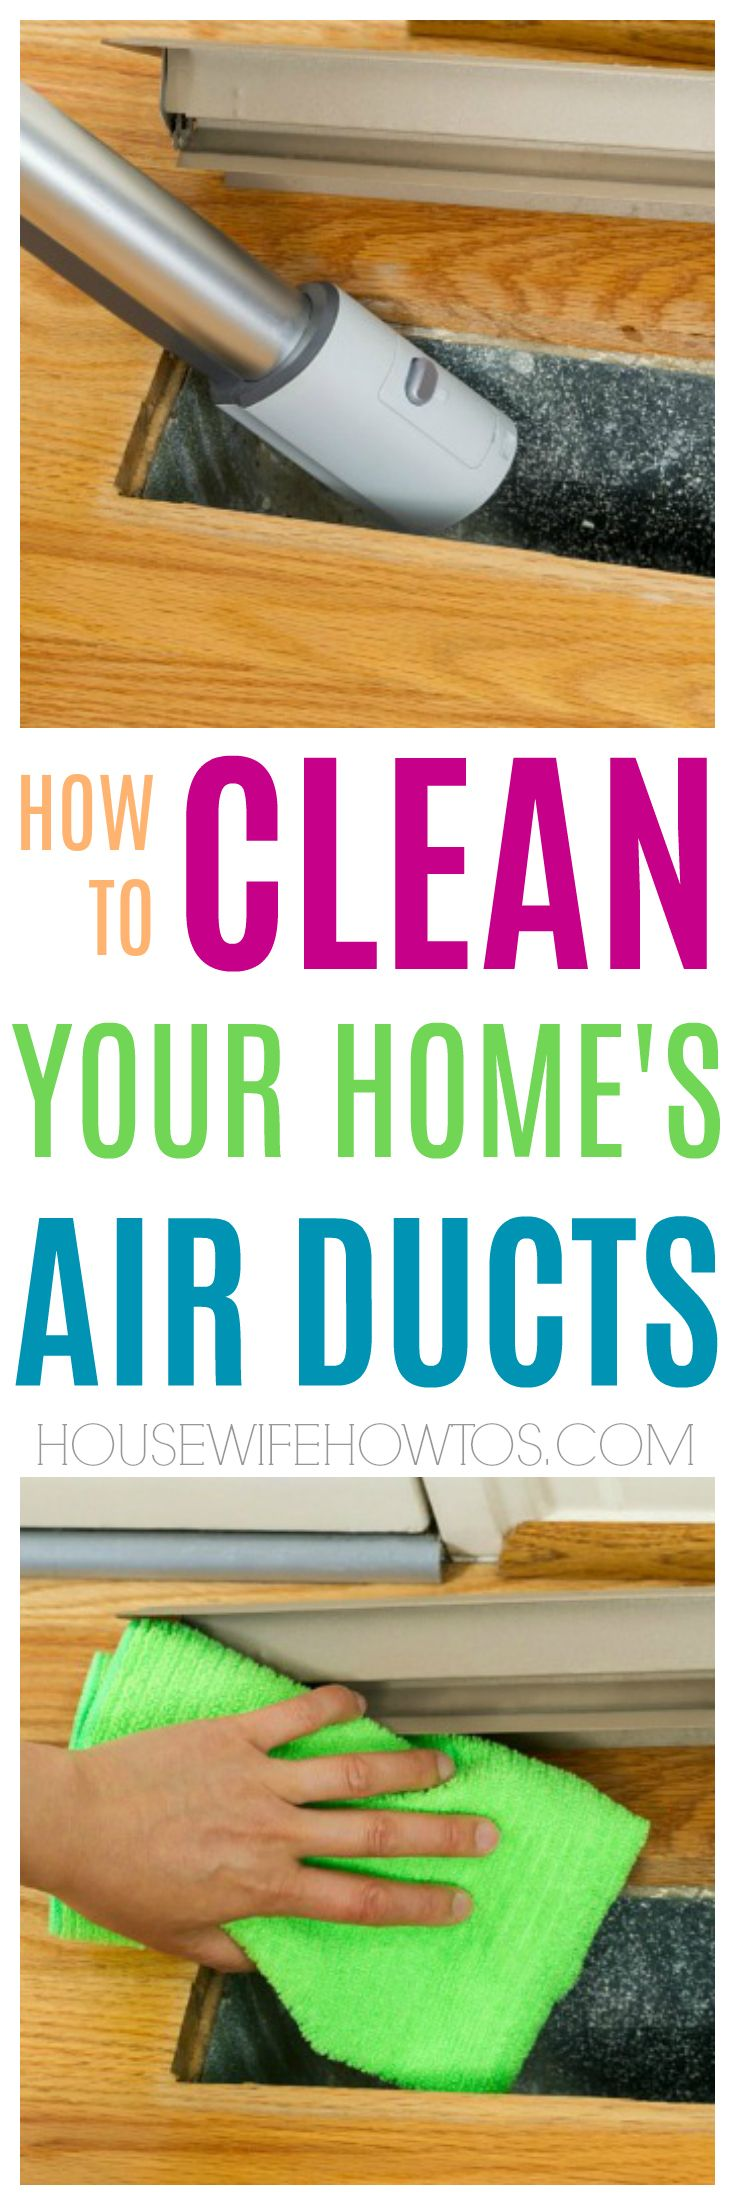 How to clean your own air ducts – I had no idea you can DIY this but now this household chore is part of my monthly cleaning routine.